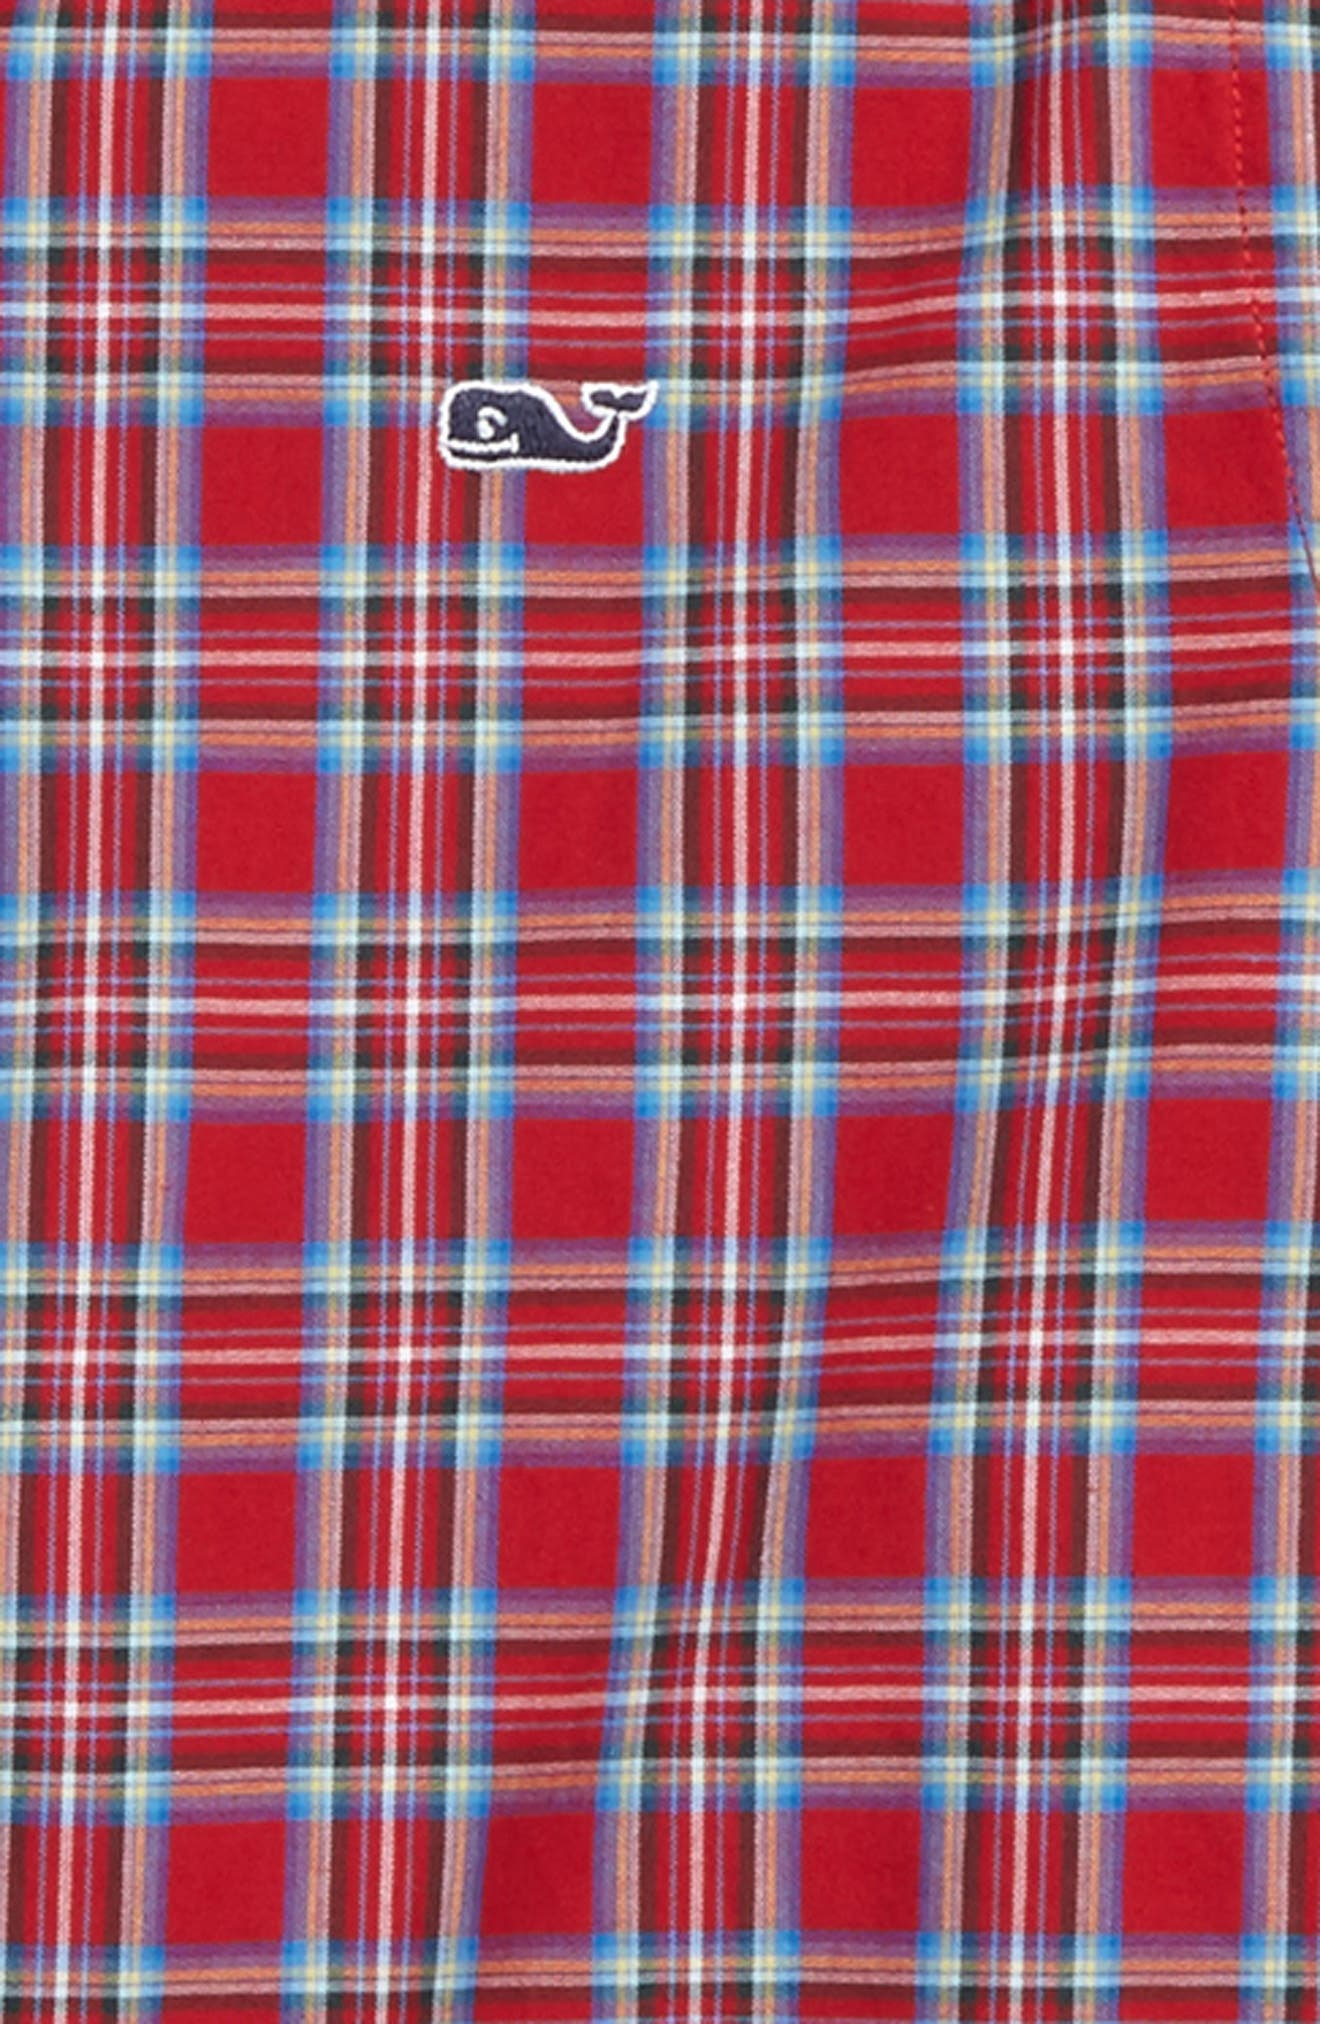 Riverton Plaid Whale Shirt,                             Alternate thumbnail 2, color,                             Tomato Check